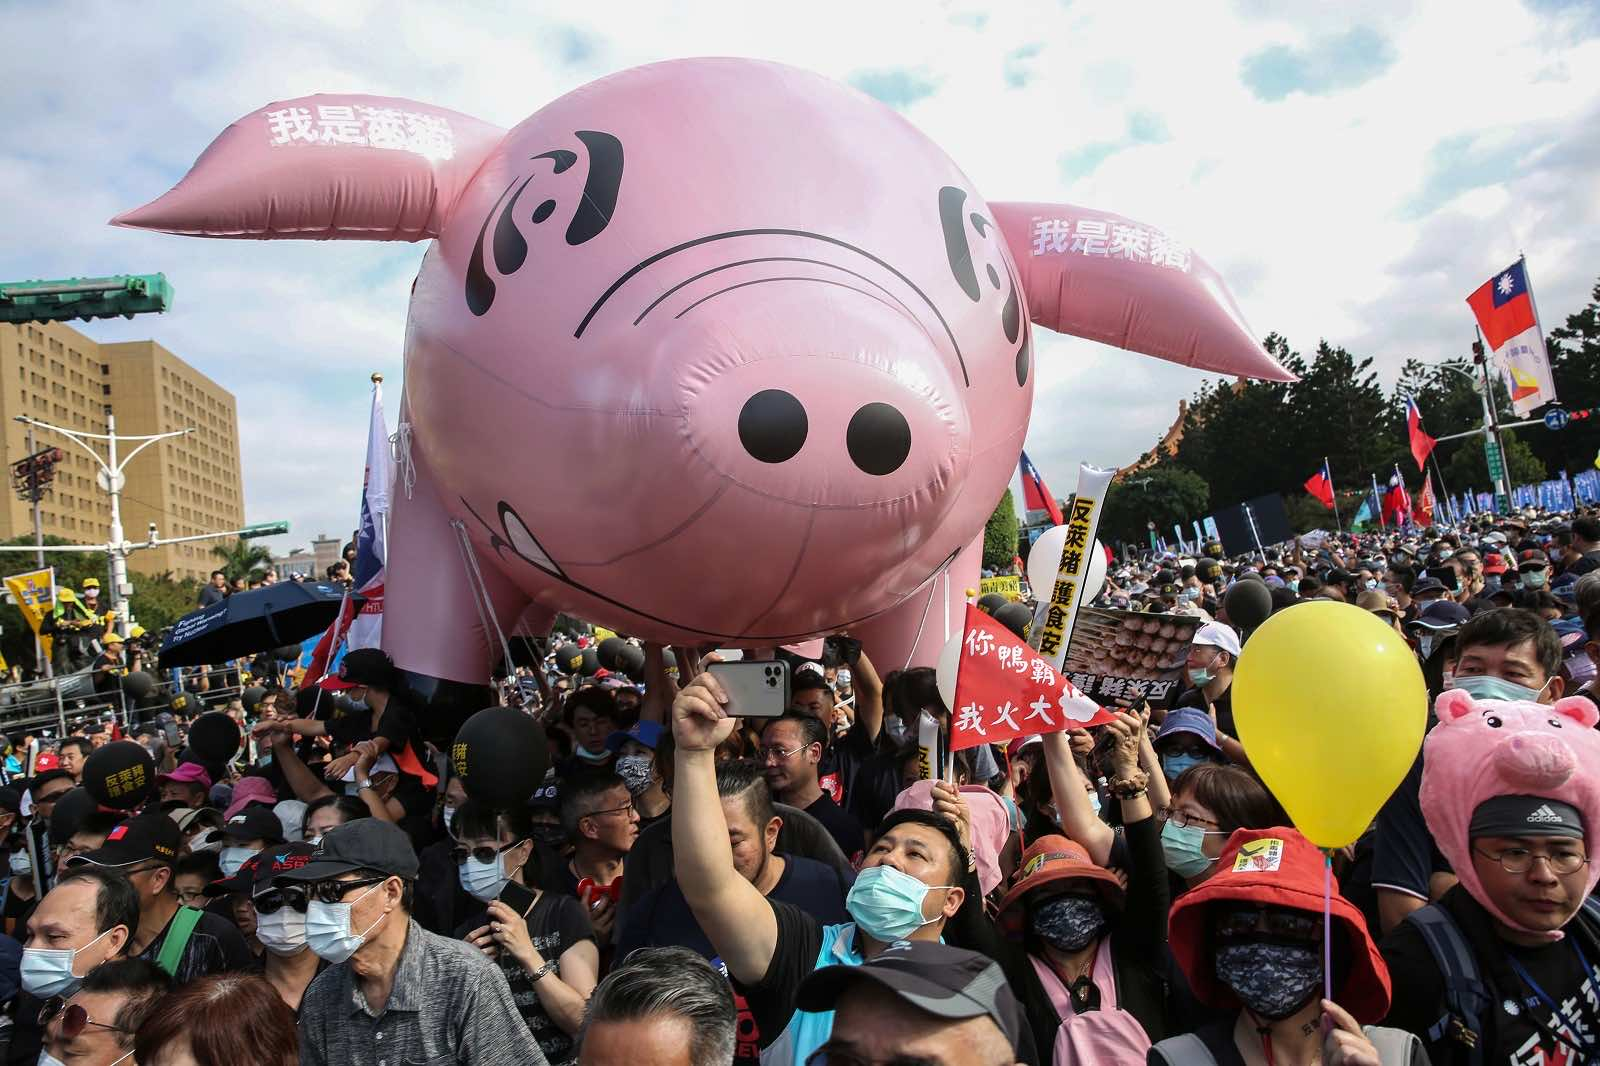 """Marchers at the annual pro-labour """"Autumn Struggle"""" protest against the lifting of restrictions on US pork containing ractopamine feed additive, Taipei, November 2020 (Hsu Tsun-hsu/AFP via Getty)"""